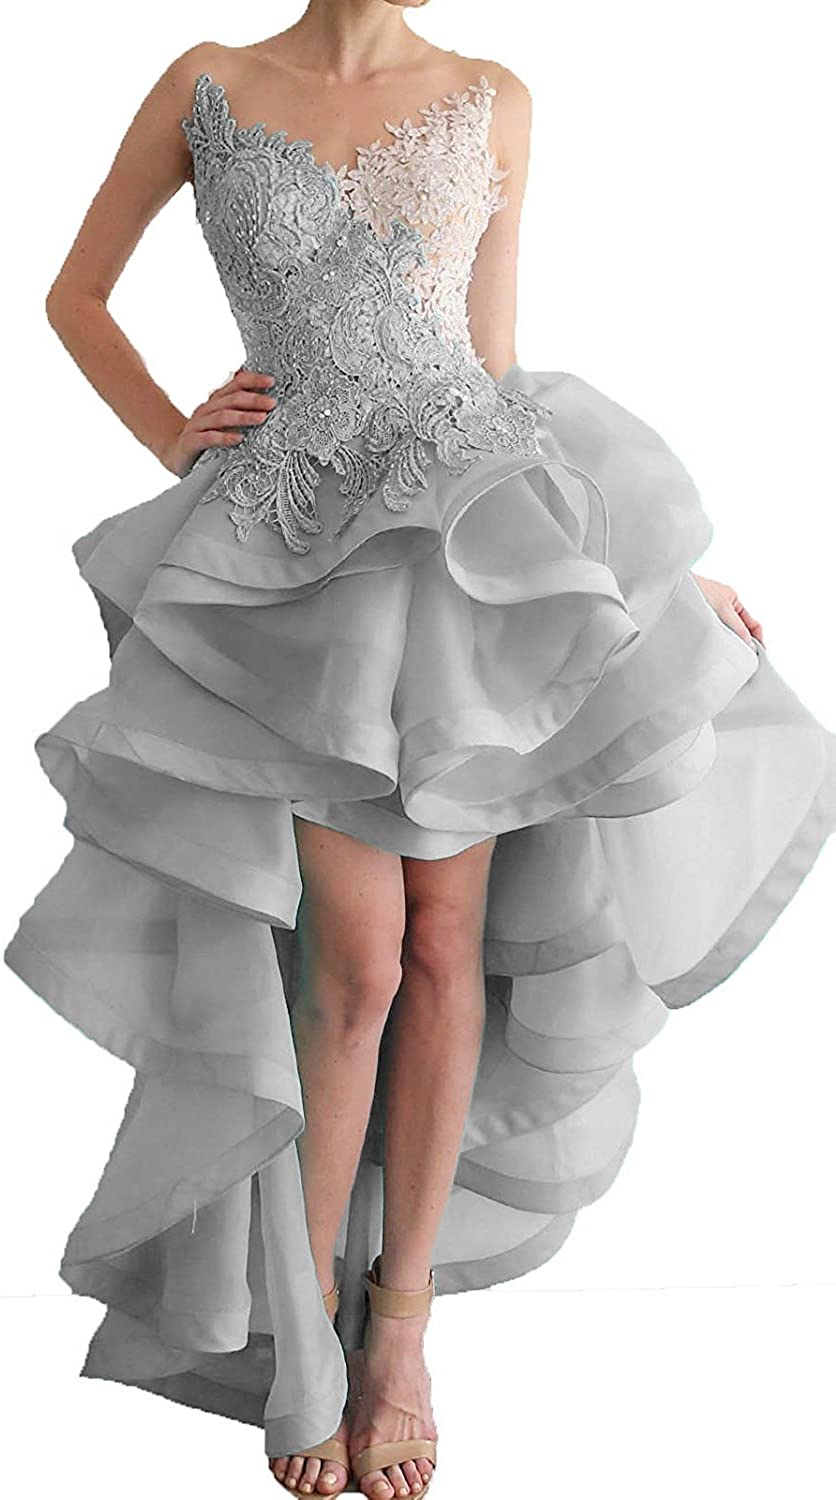 Xswpl High Beaded Low Party Prom Dresses Organza Appliques Women's NmO8nyv0w